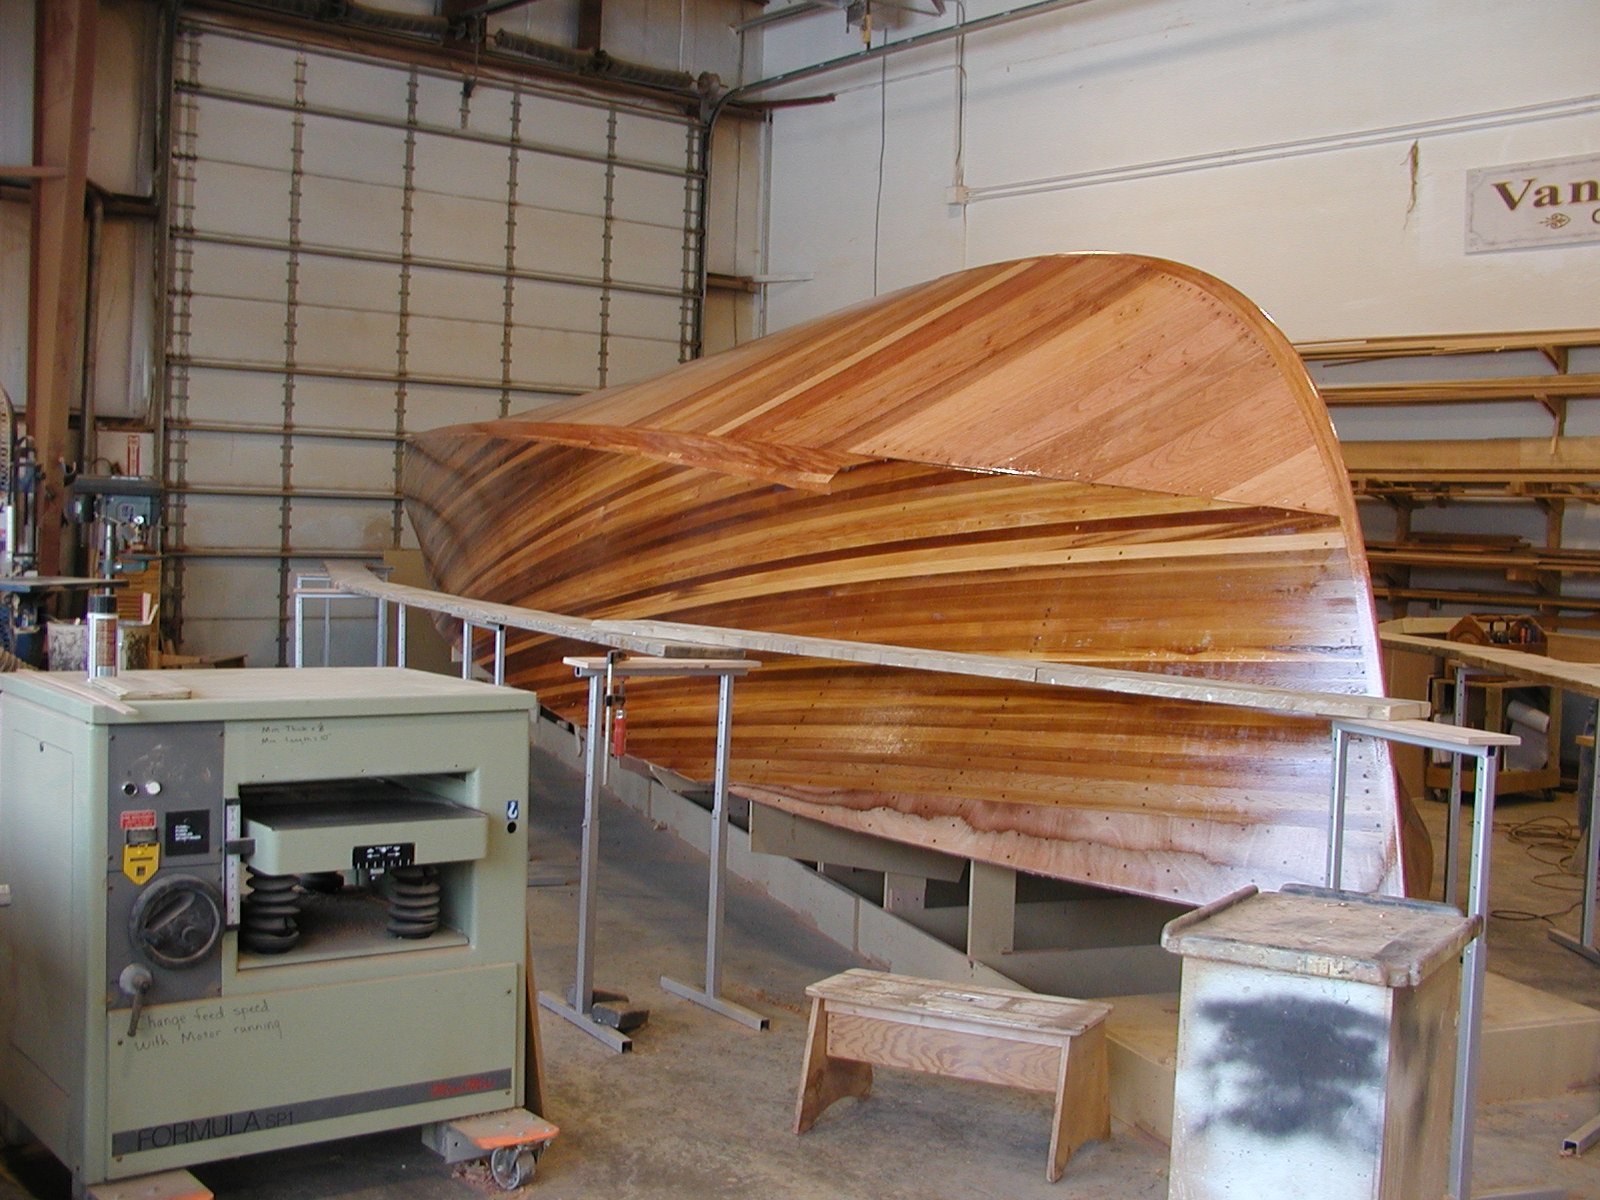 Hull planking drying on Blue Star